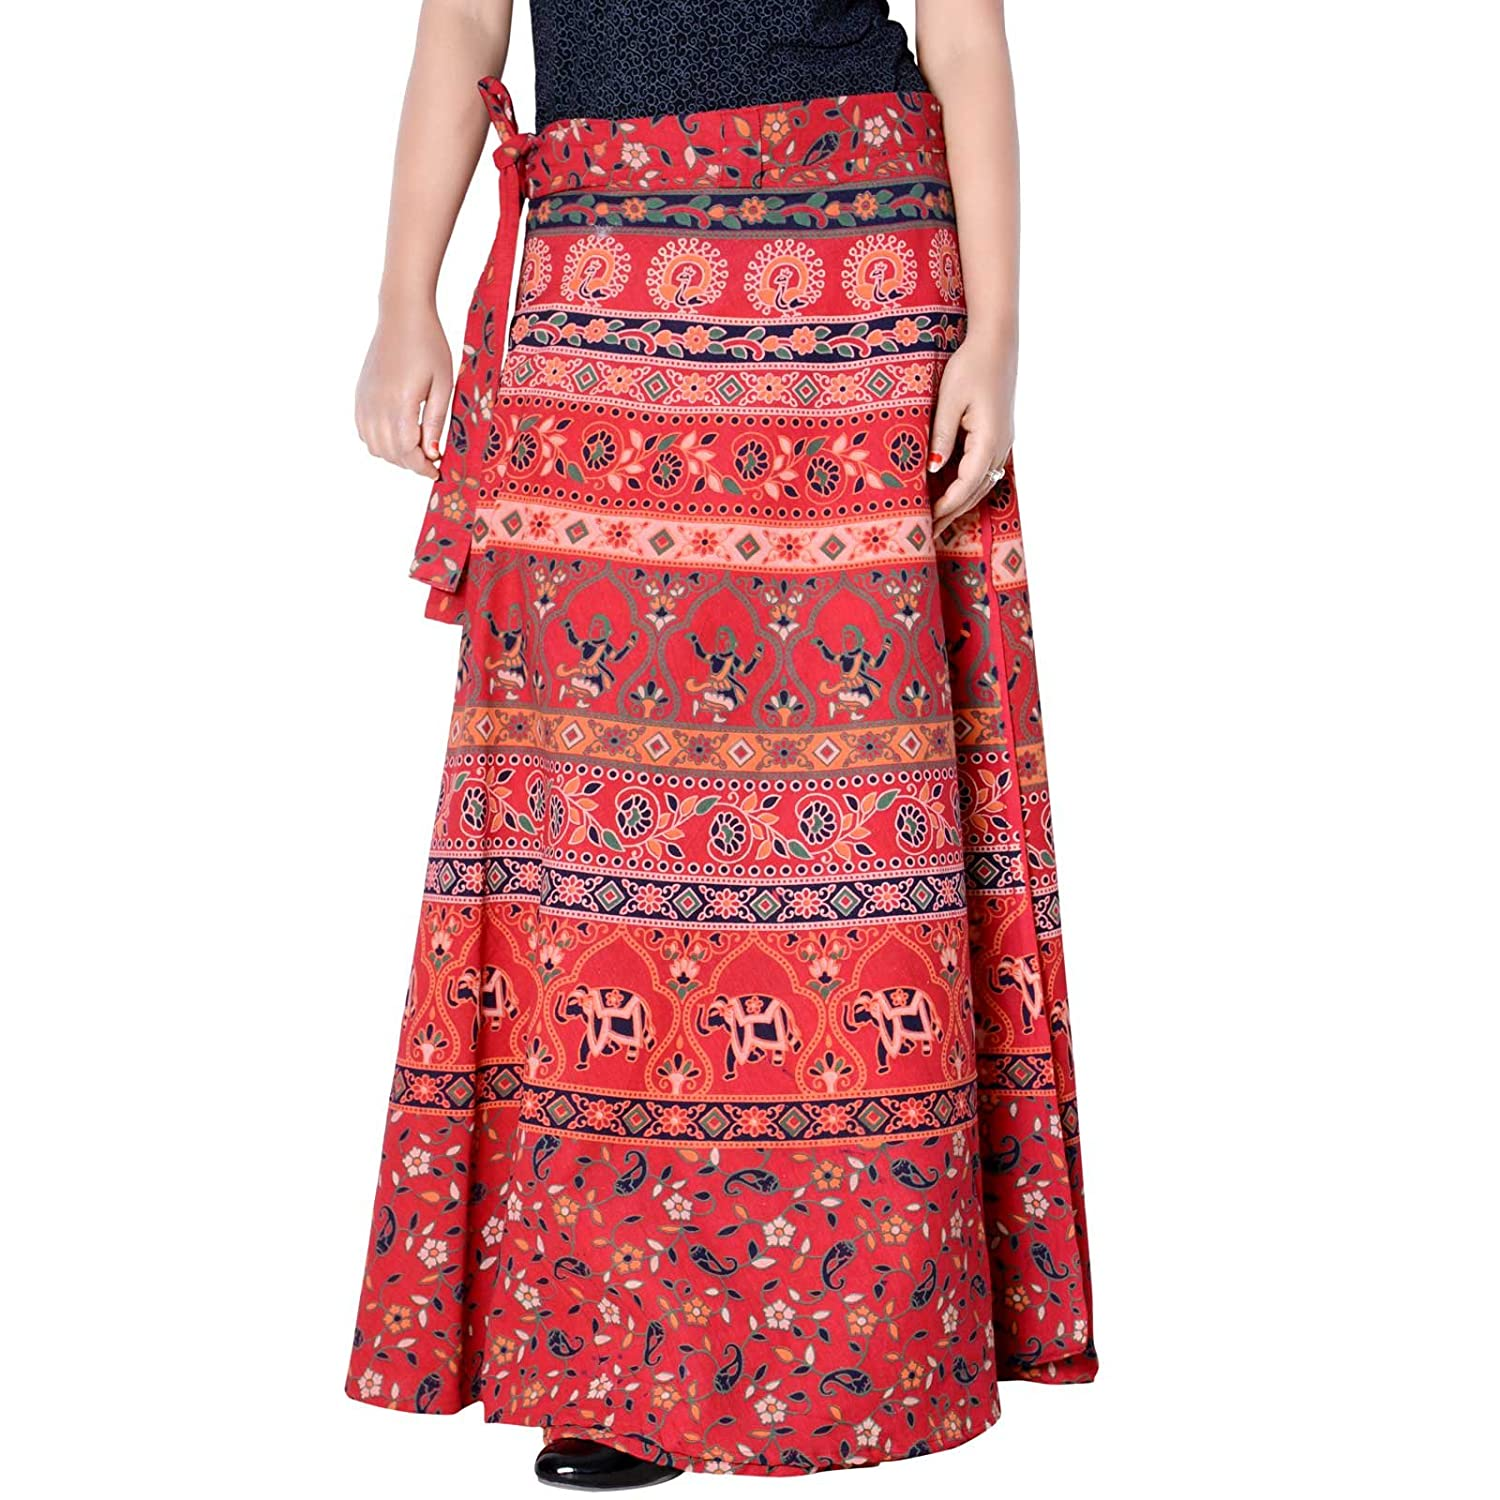 36 Inch Length Length Wrap Around Rajasthani Skirt D3